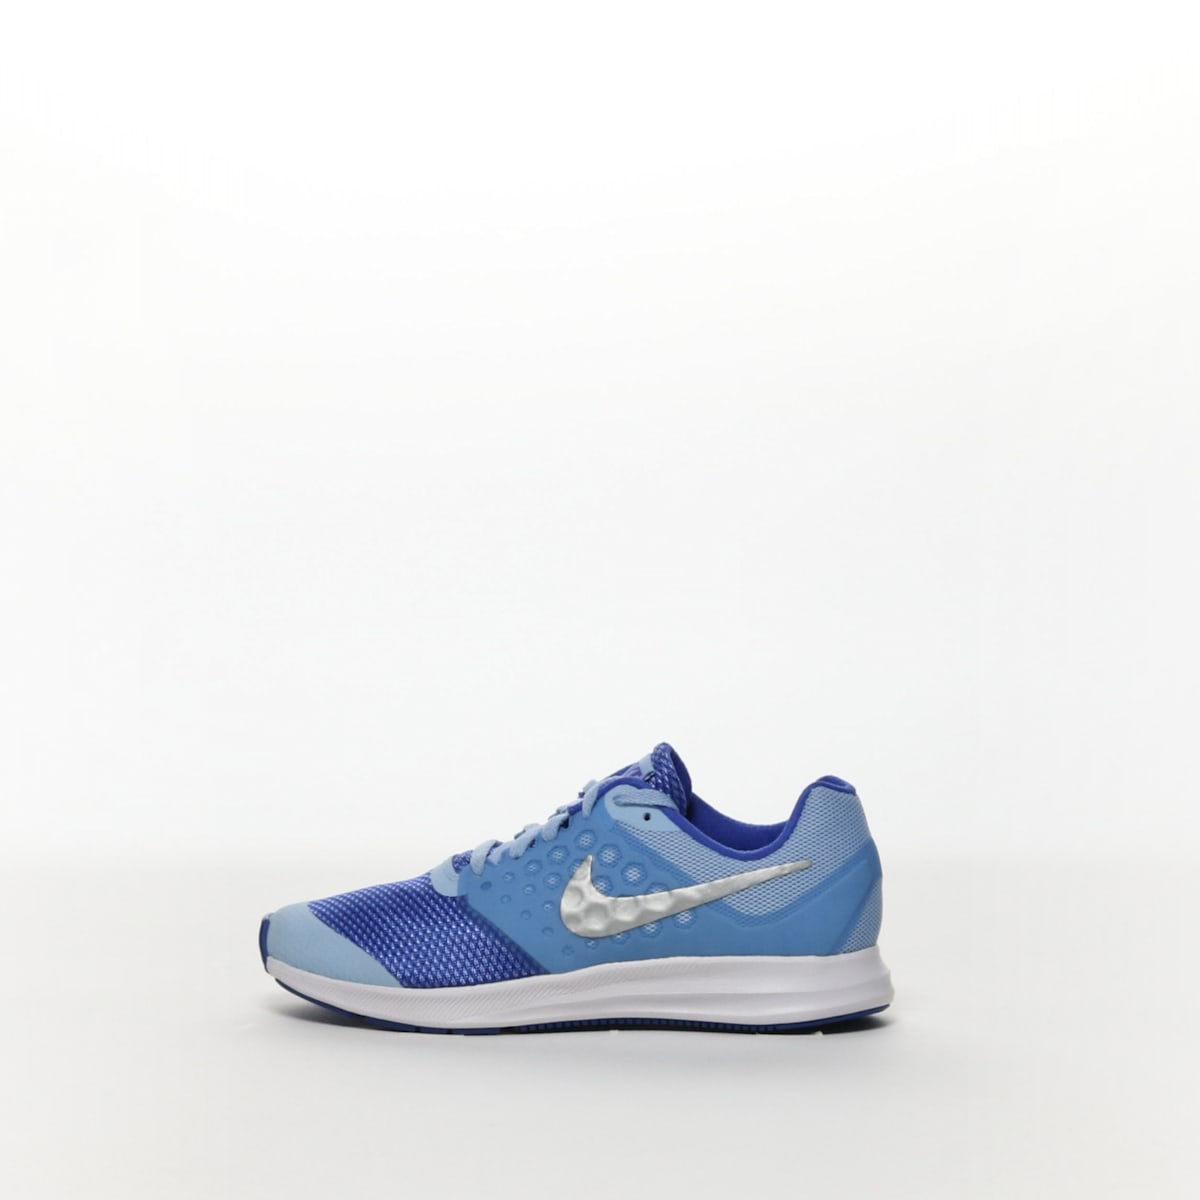 b7e01ae7d845 Girls  Nike Downshifter 7 (GS) Running Shoe - ALUMN M SILV – Resku